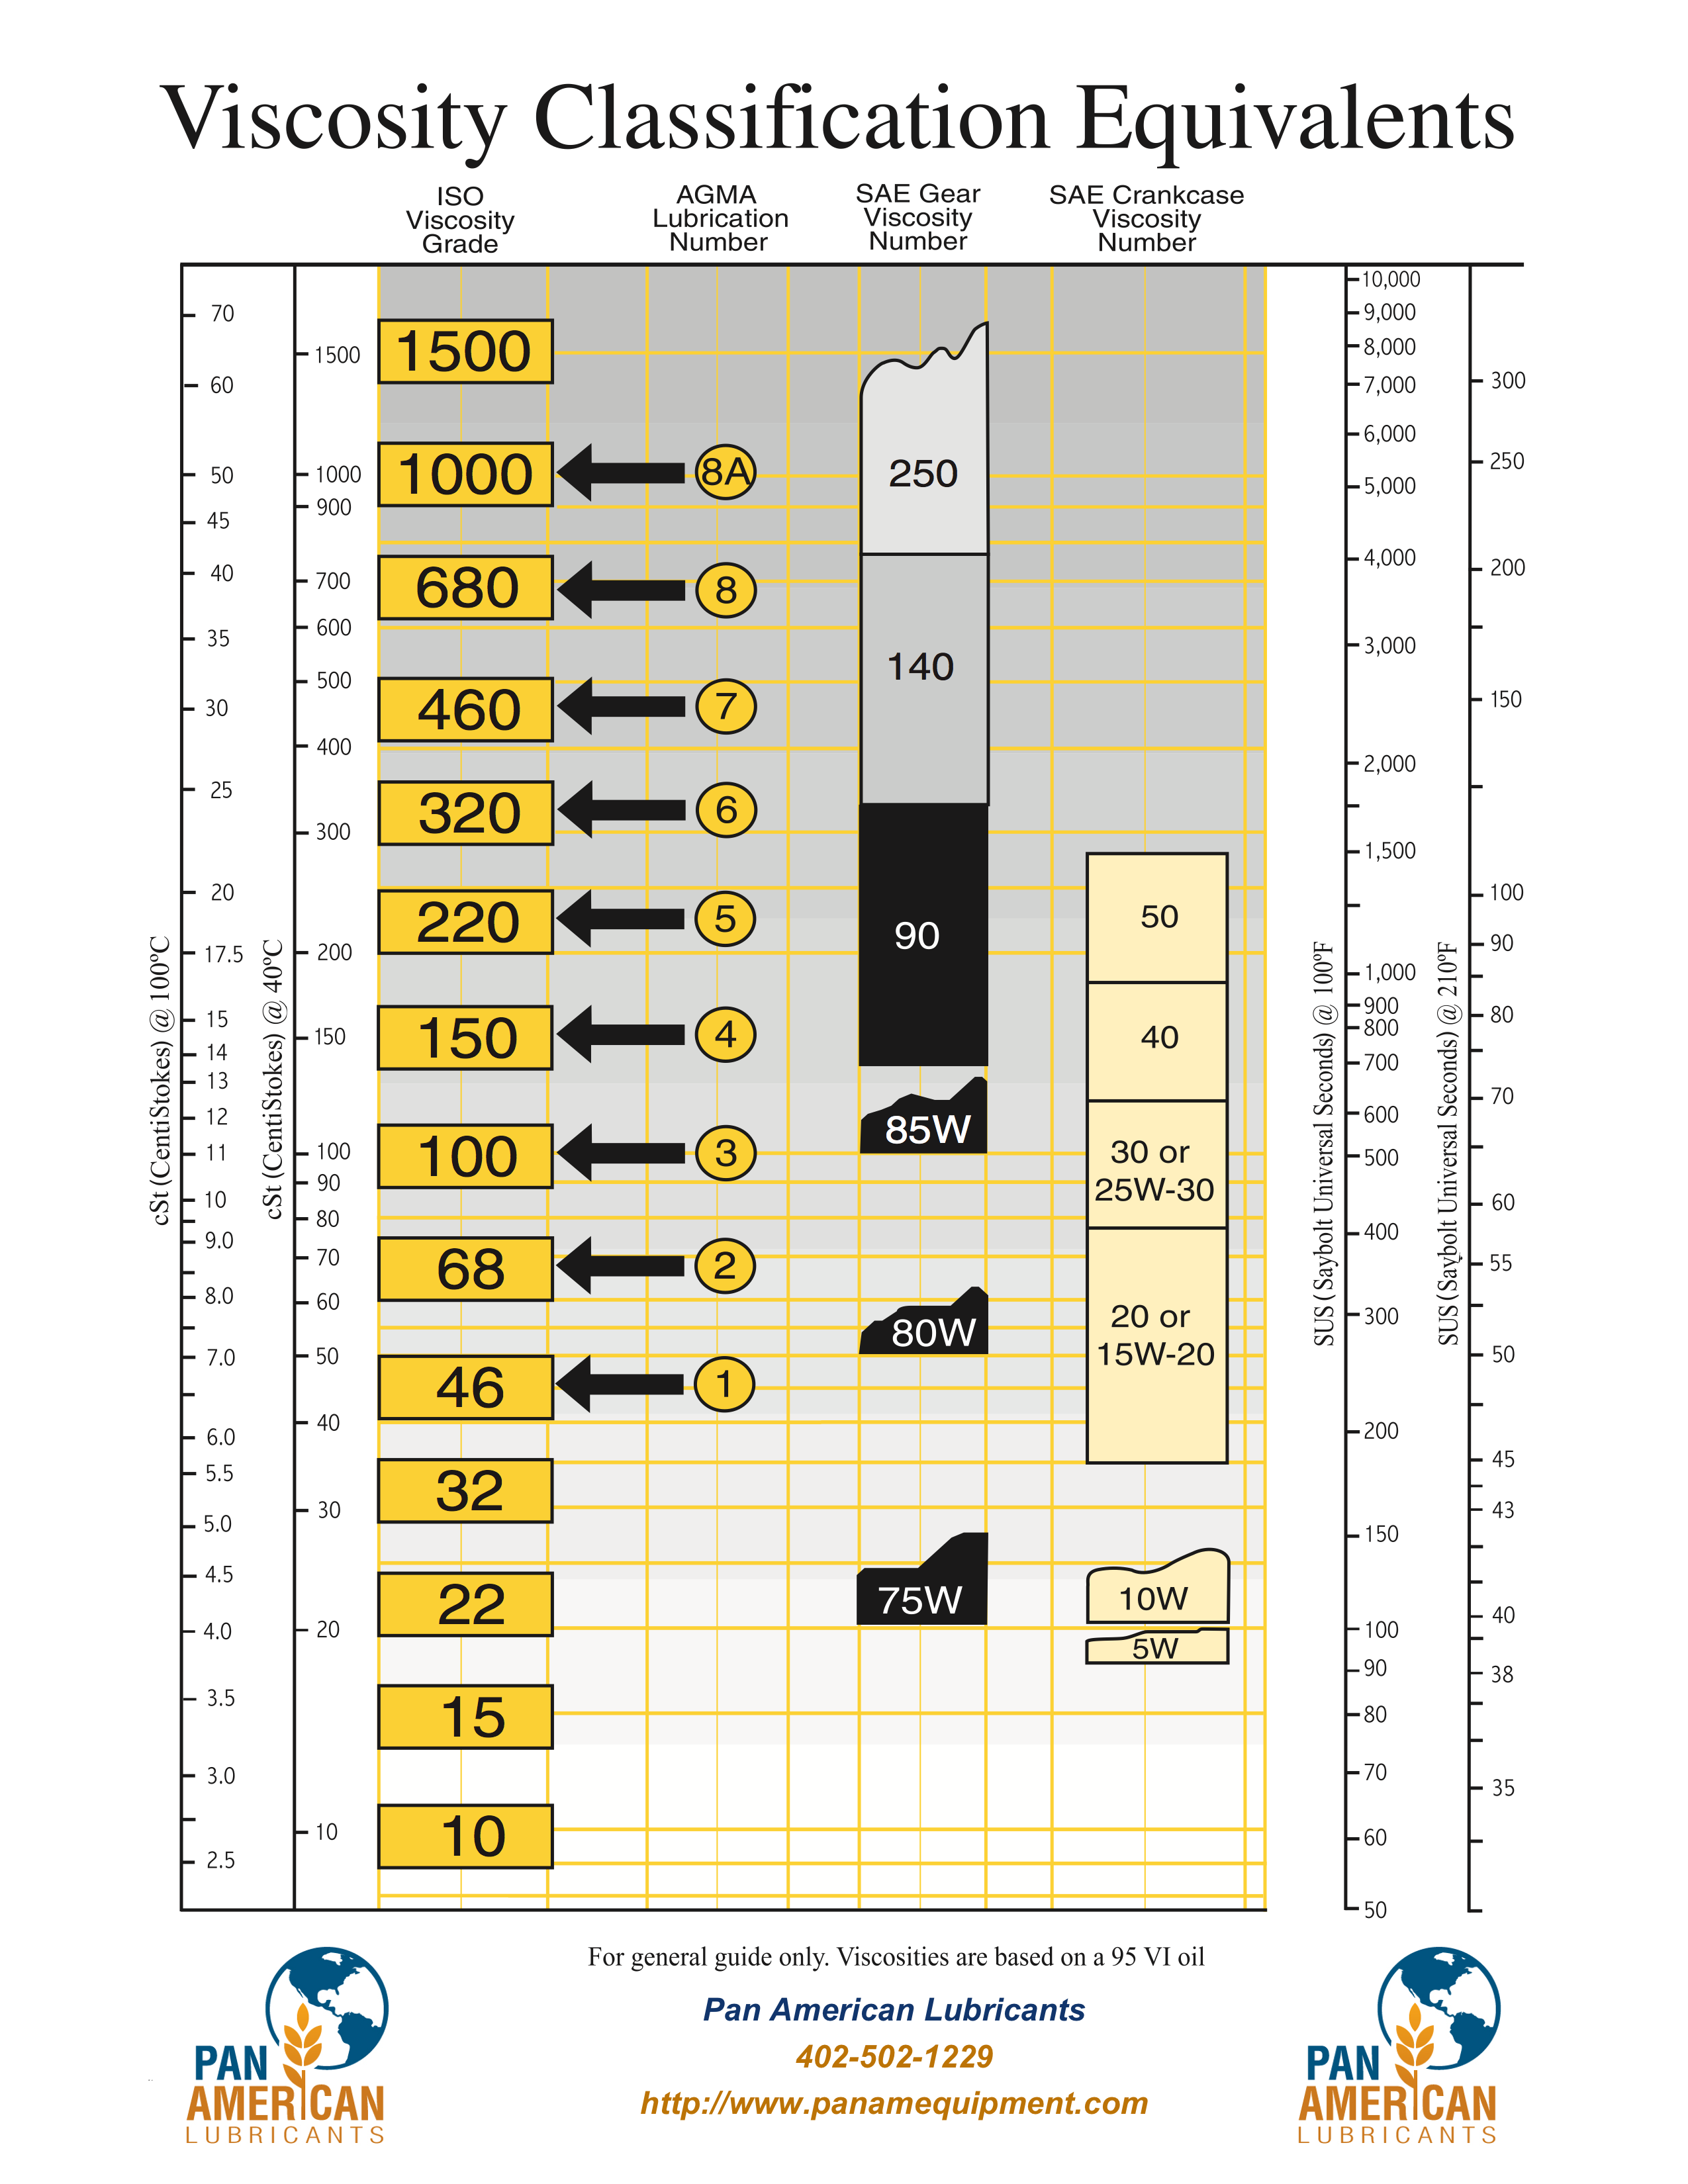 Oil viscosity conversion chart gallery free any chart examples oil viscosity conversion chart gallery free any chart examples oil viscosity conversion chart choice image free nvjuhfo Image collections